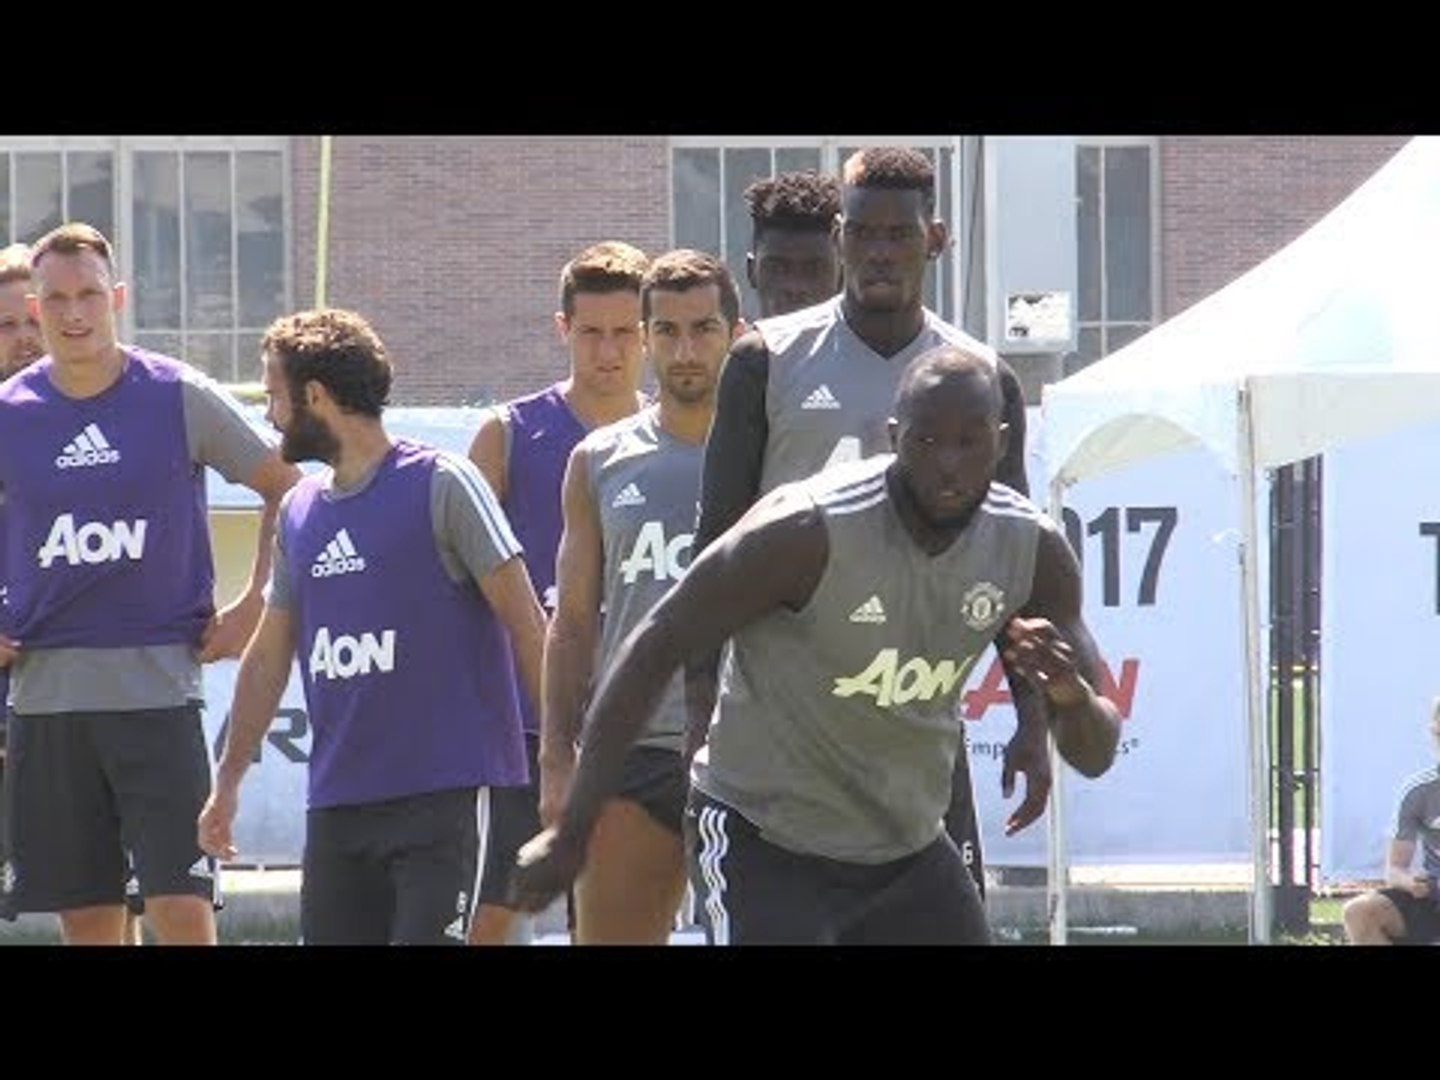 Manchester United Train Ahead Of LA Galaxy Match - Manchester United Tour 2017